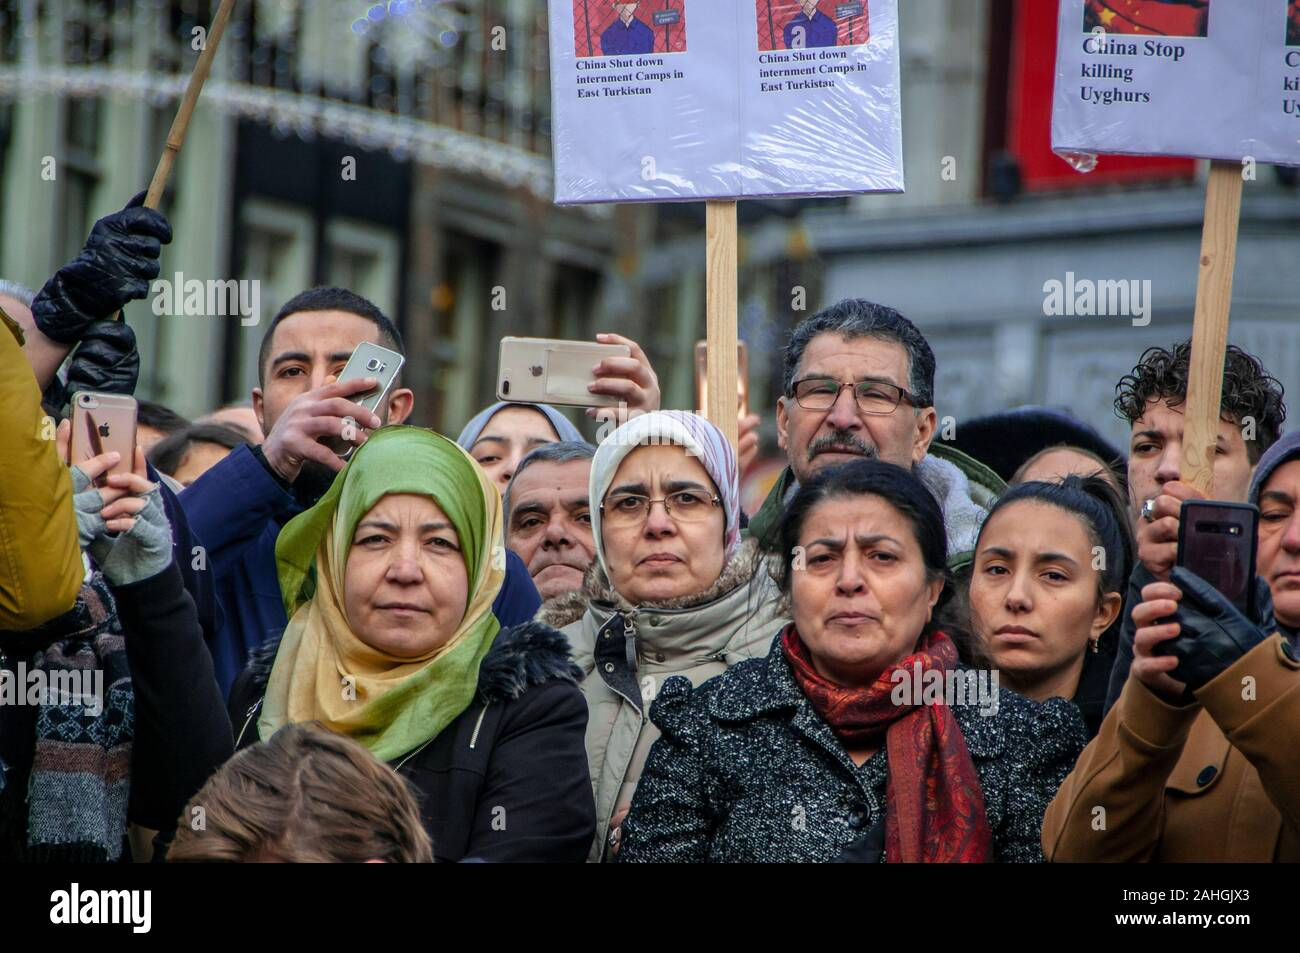 The Dam, Amsterdam, The Netherlands. Sunday 29th December, 2019. An Anti-Chinese demonstration this afternoon, as a large group of protesters gathered to denounce the systematic policy of China, to erase the ethnic and cultural identity of Uighurs and other Muslim minorities in Xinjiang. The Chinese government has detained more than a million muslins in detention camps in, a so-called reeducation program. The Uyghurs and other Turkic Muslims are culturally and ethnically distant from China's majority ethic Han Chinese population. © Charles M Vella/Alamy Live News Stock Photo